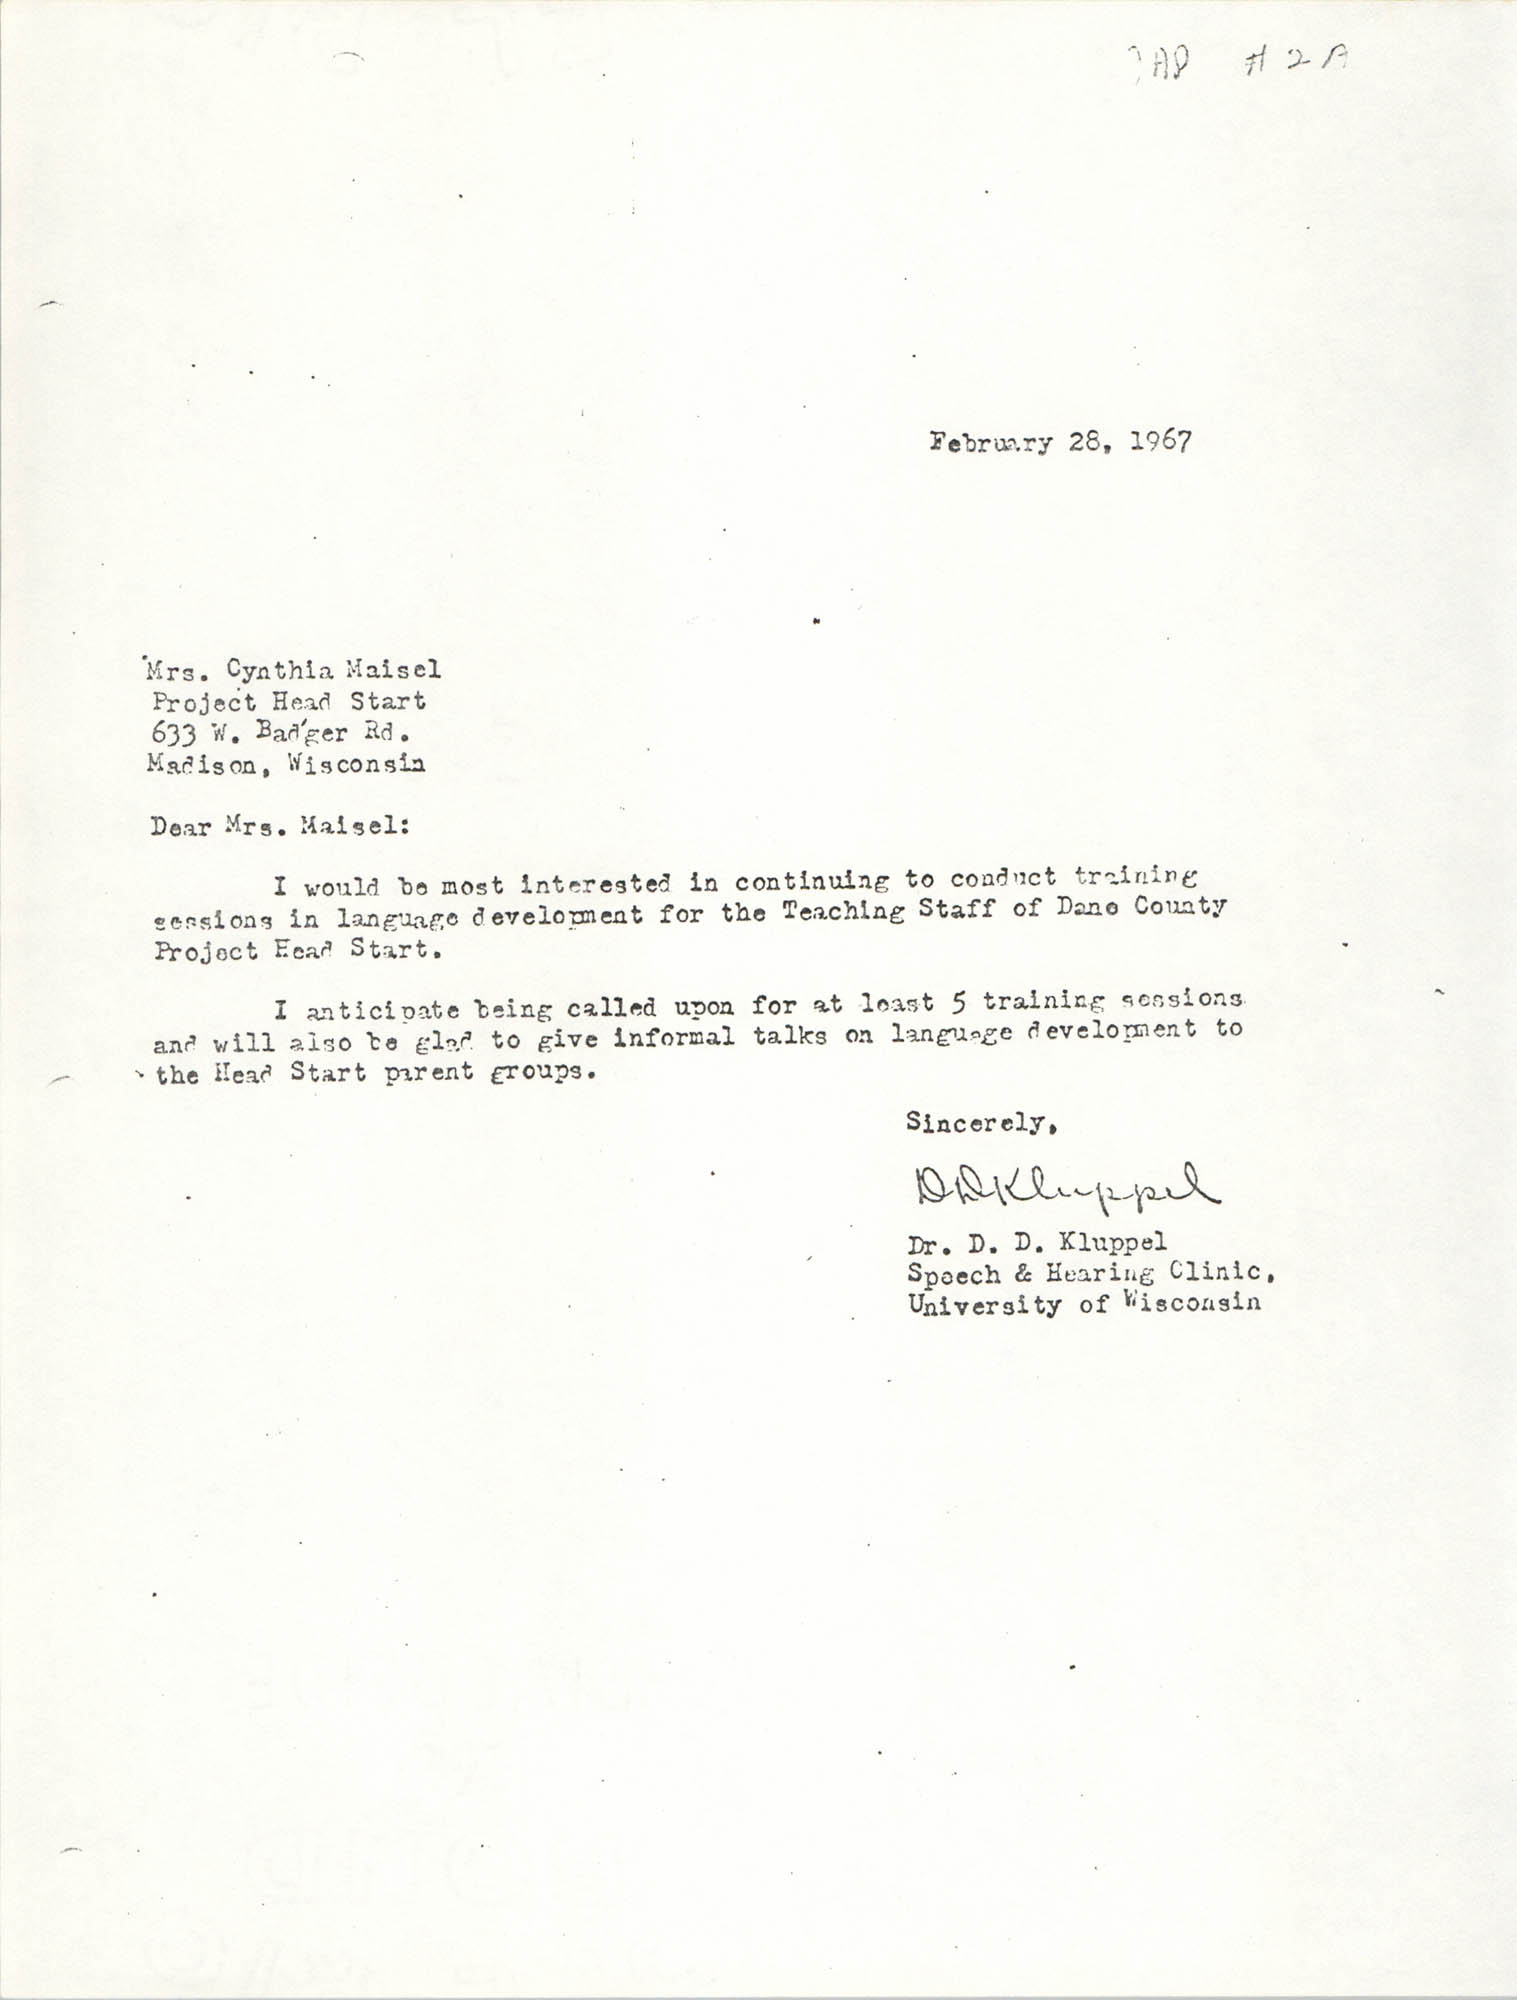 Letter from D. D. Kluppel to Cynthia Maisel, February 28, 1967